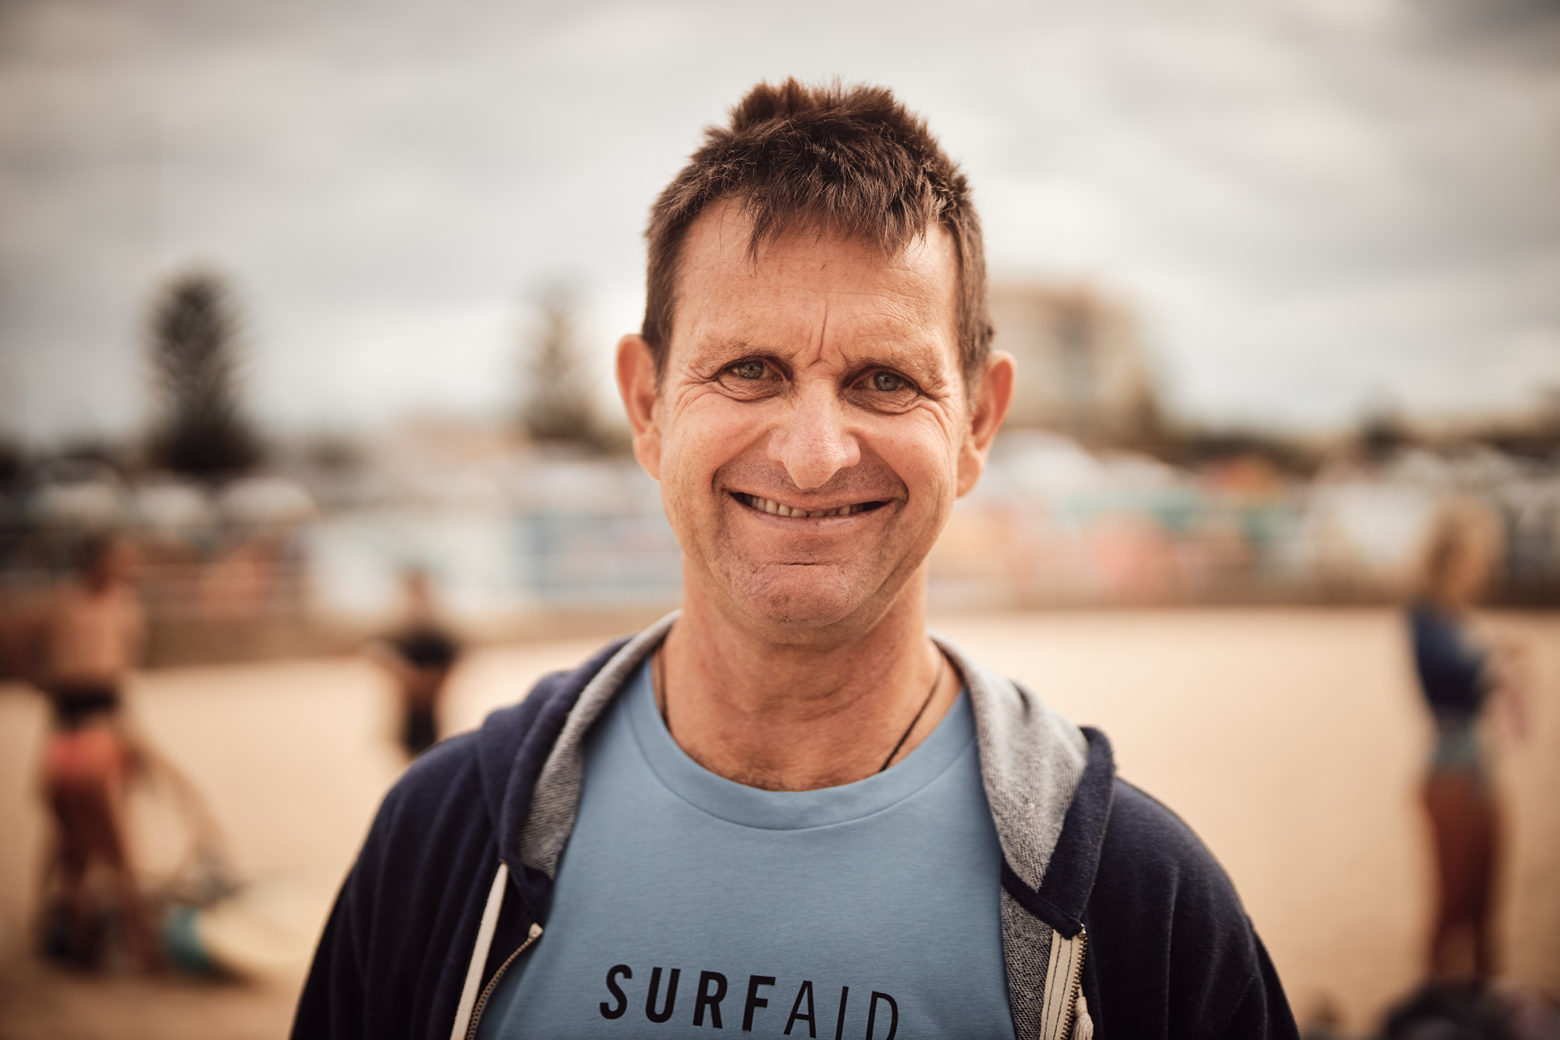 Doctor Dave - Founder of Surfaid.